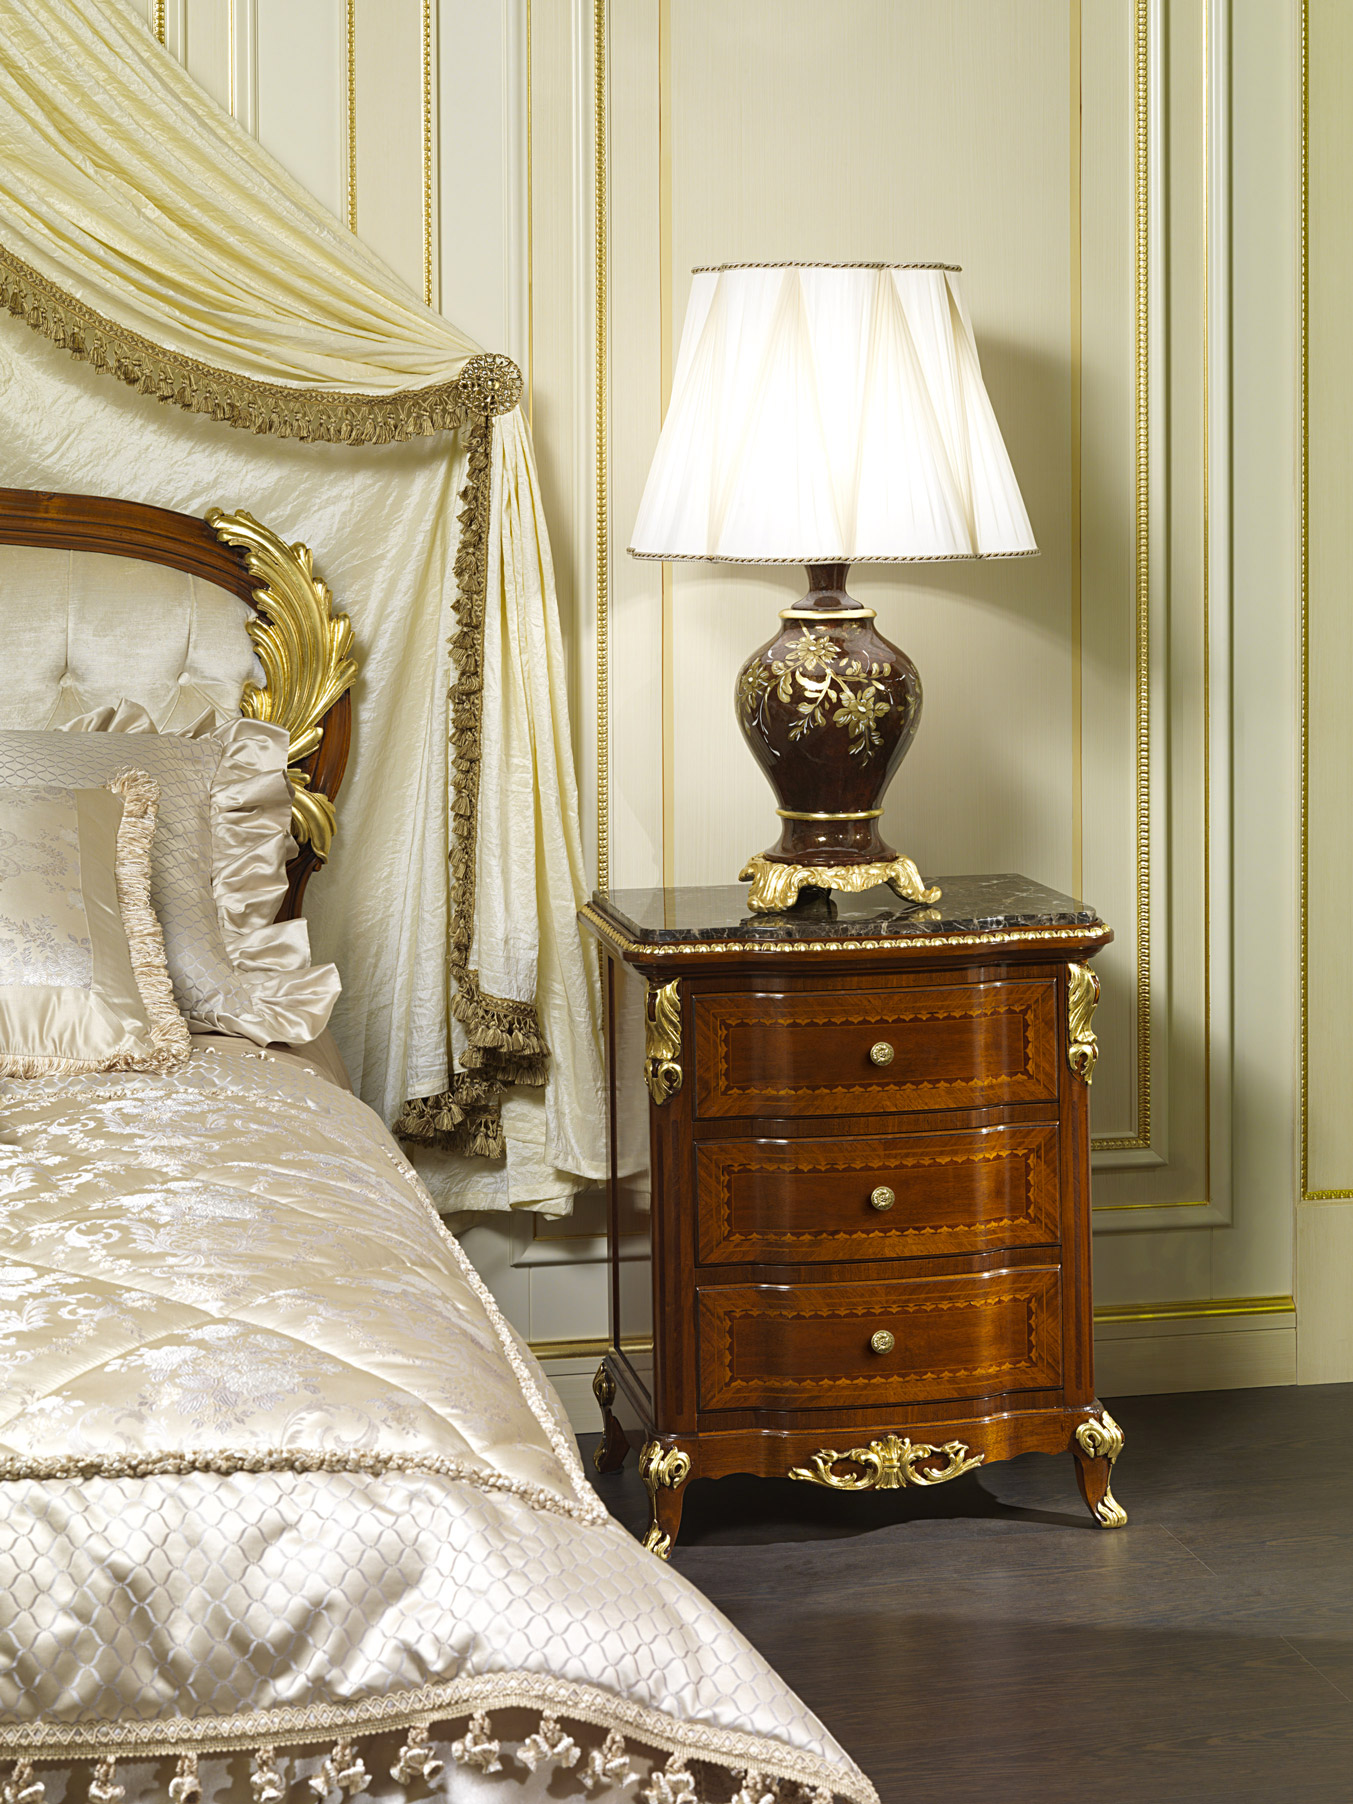 Classic Bedside Table Luxury Collection Louis Xv France